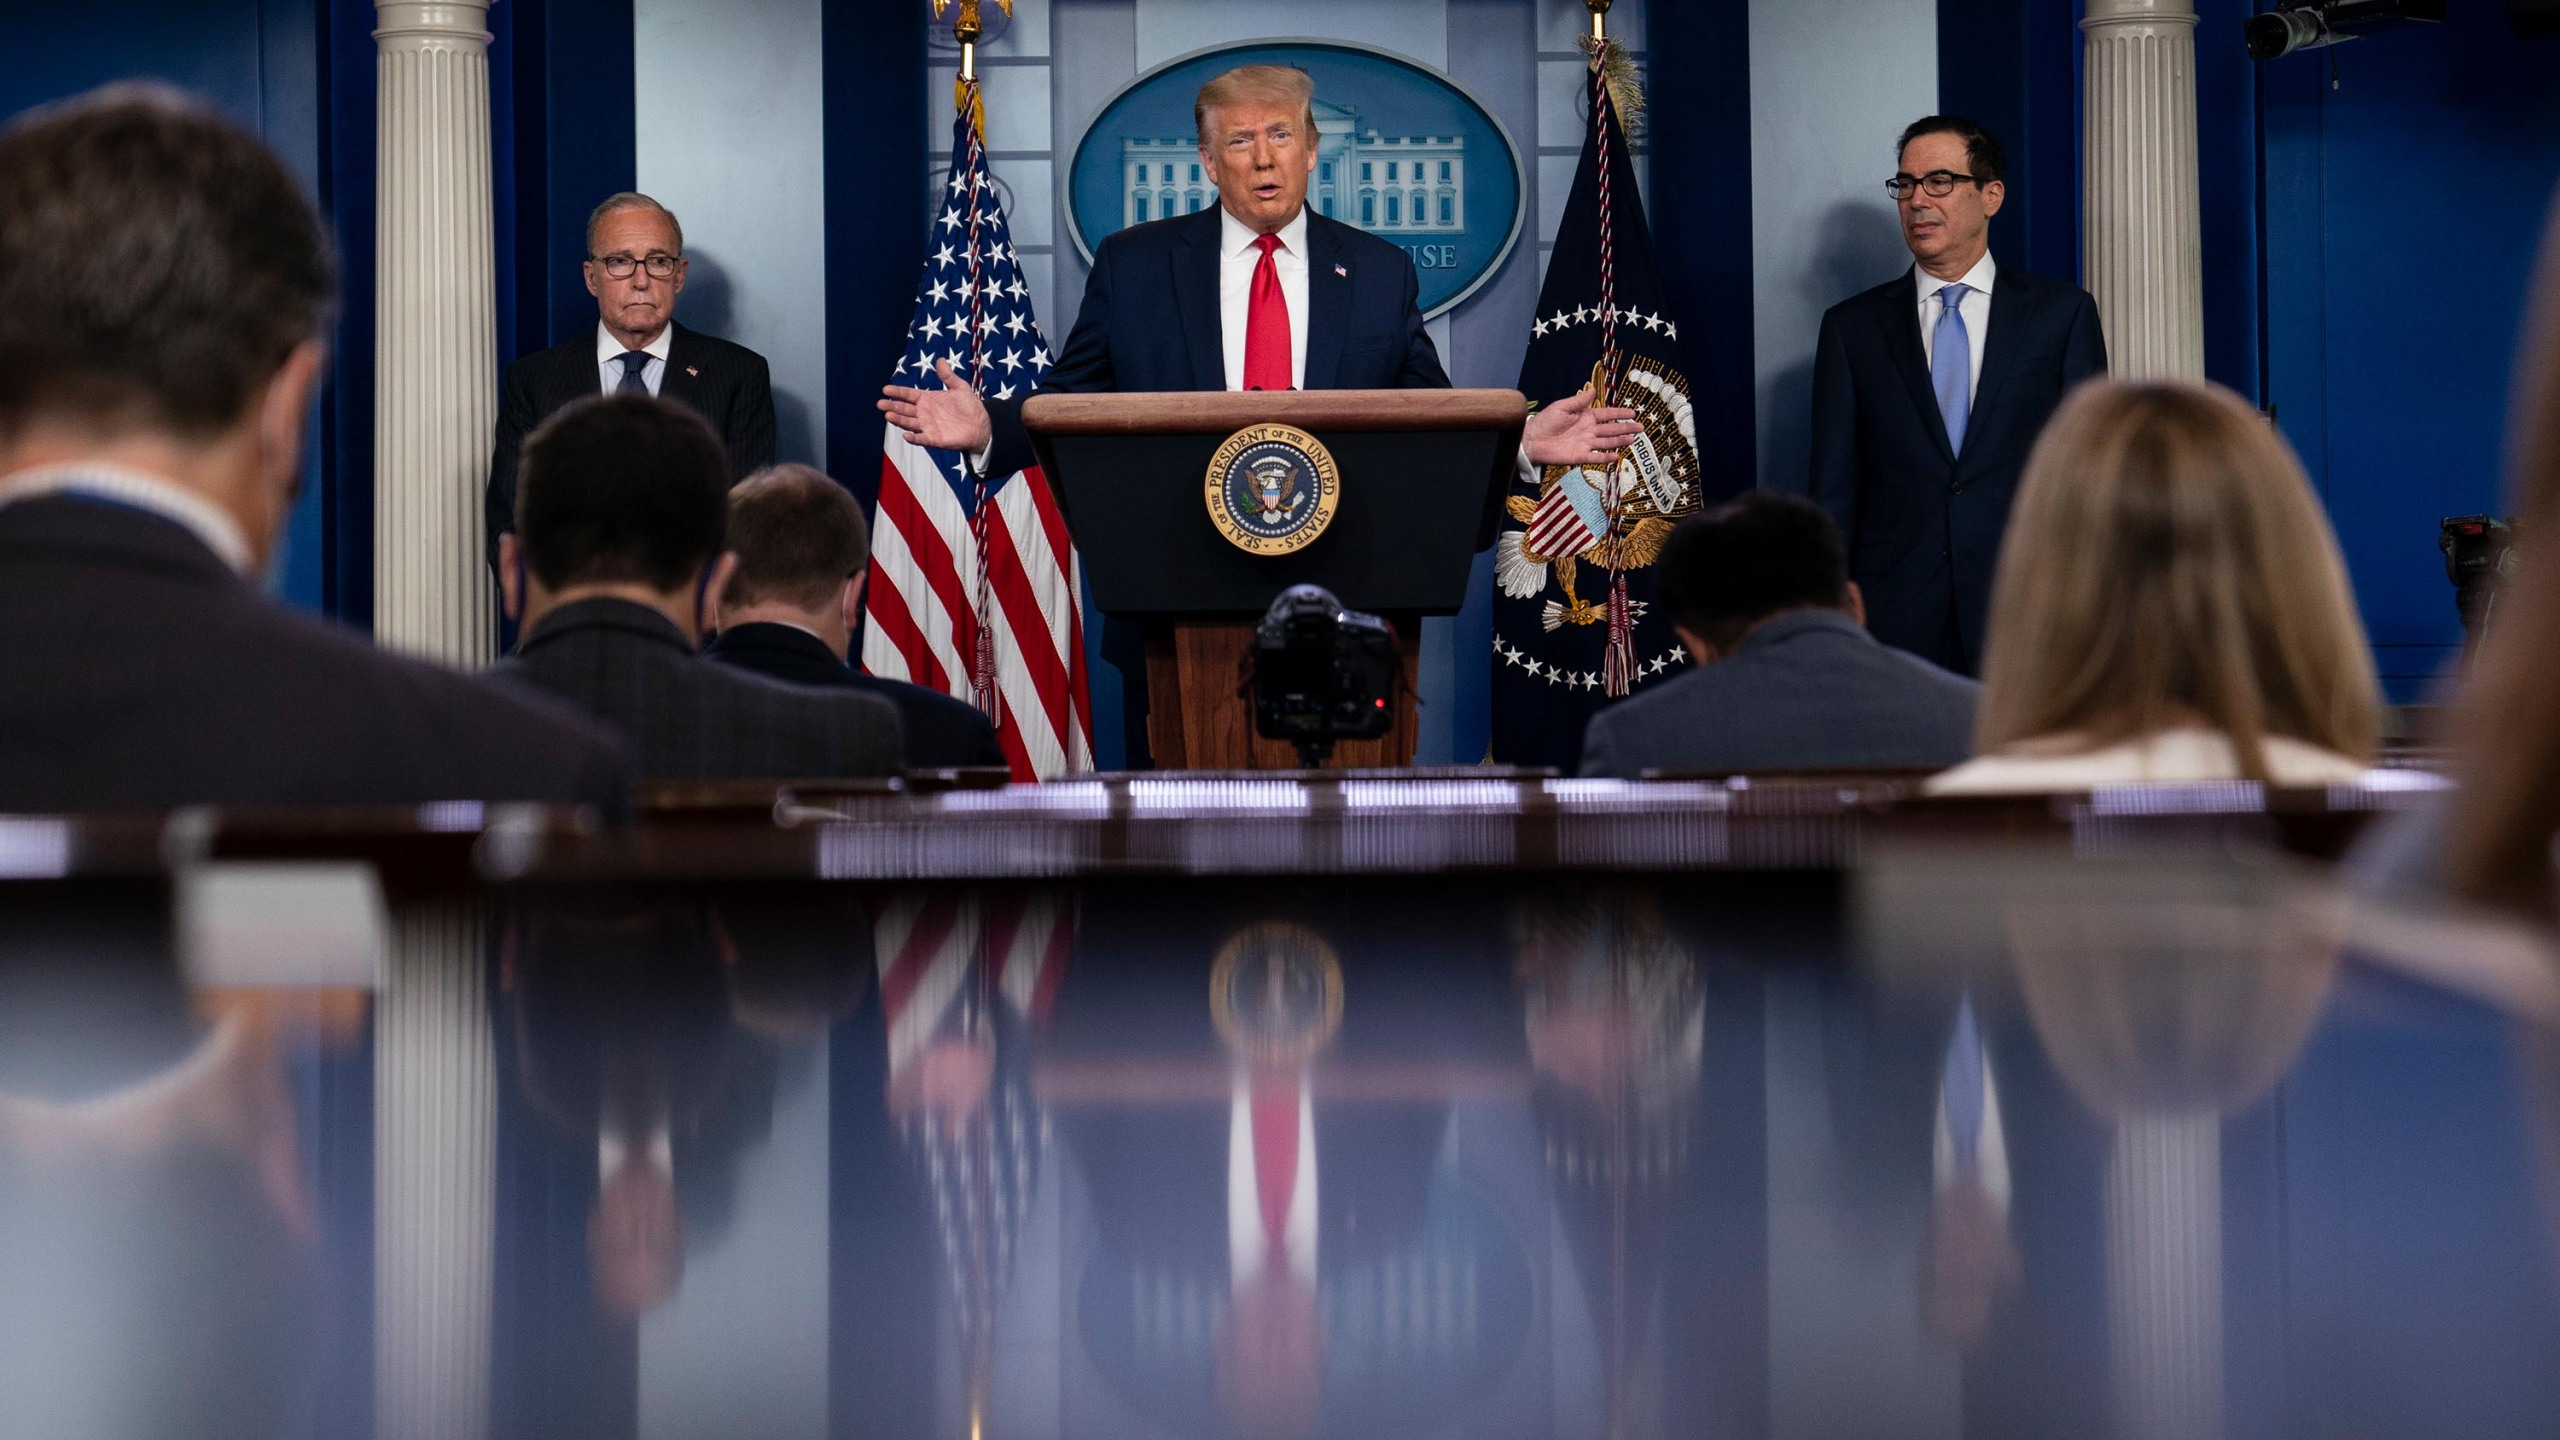 President Donald Trump on Saturday signed an extension of the Paycheck Protection Program into law, according to the White House. (Evan Vucci/AP via CNN Wire)